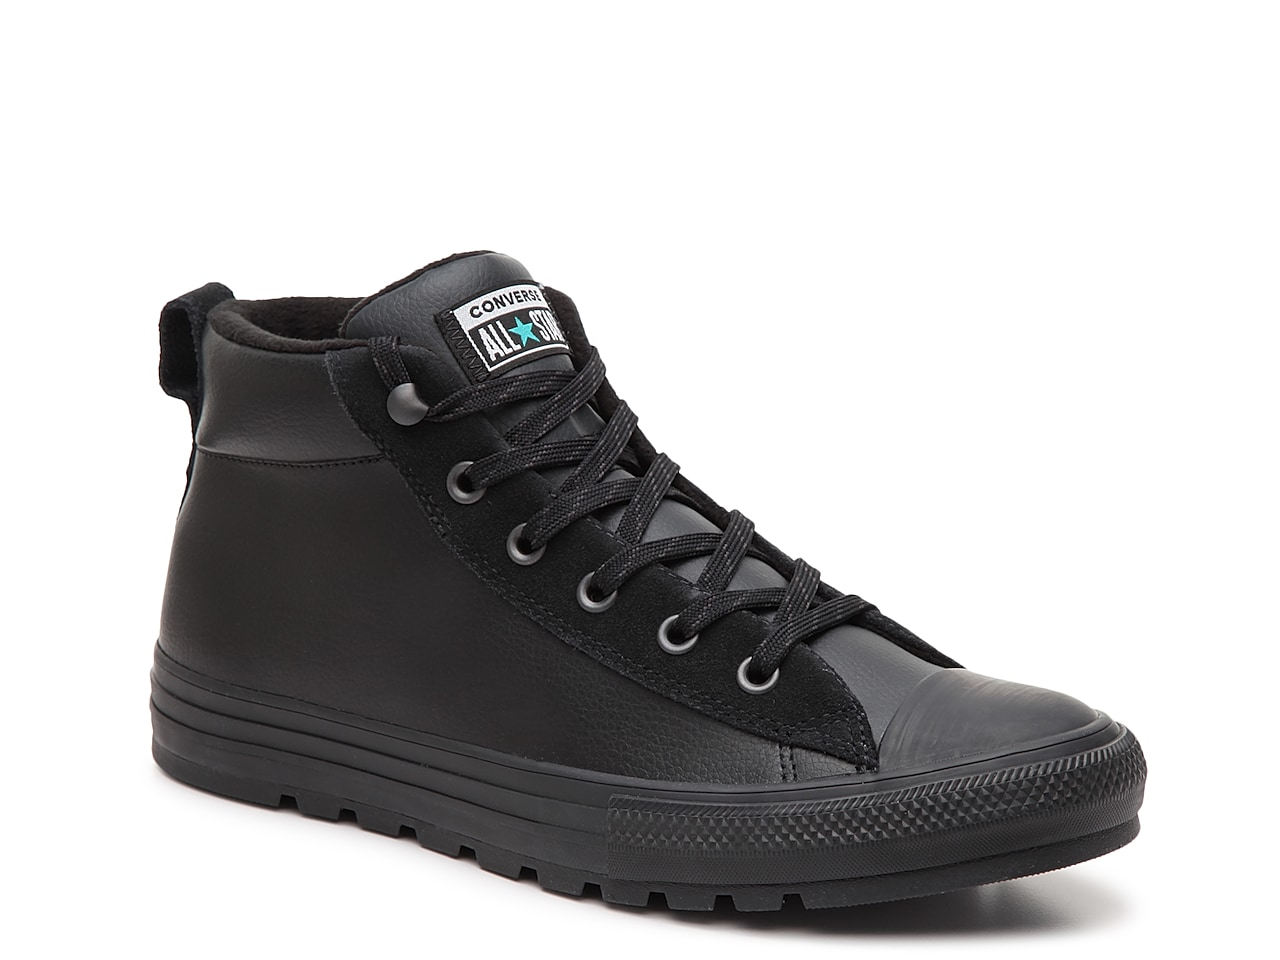 Chuck Taylor All Star Mid-Top Sneaker - Men's